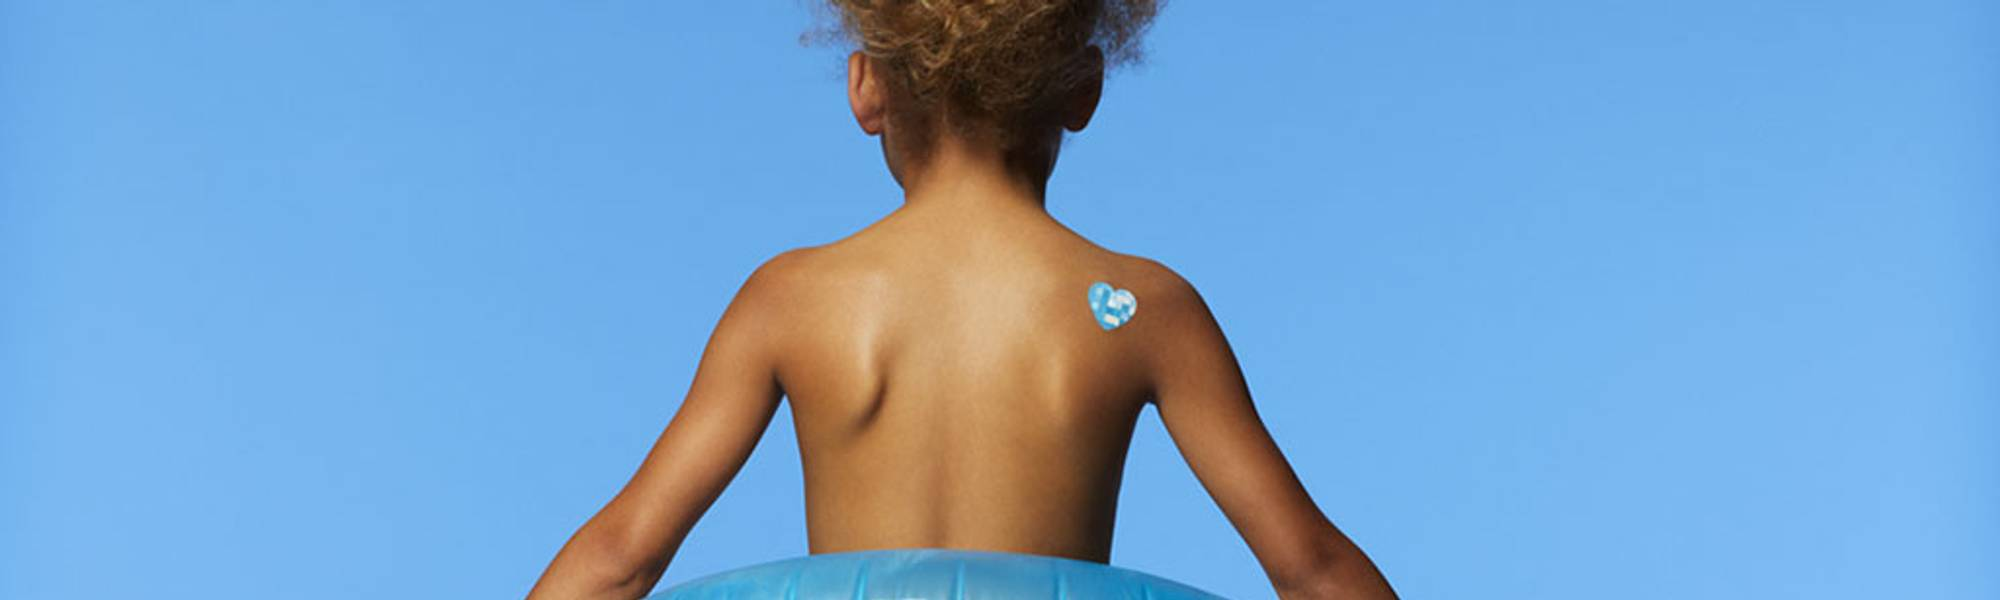 Larocheposay ArticlePage Sun Protection Sunscreen for kids How to prot